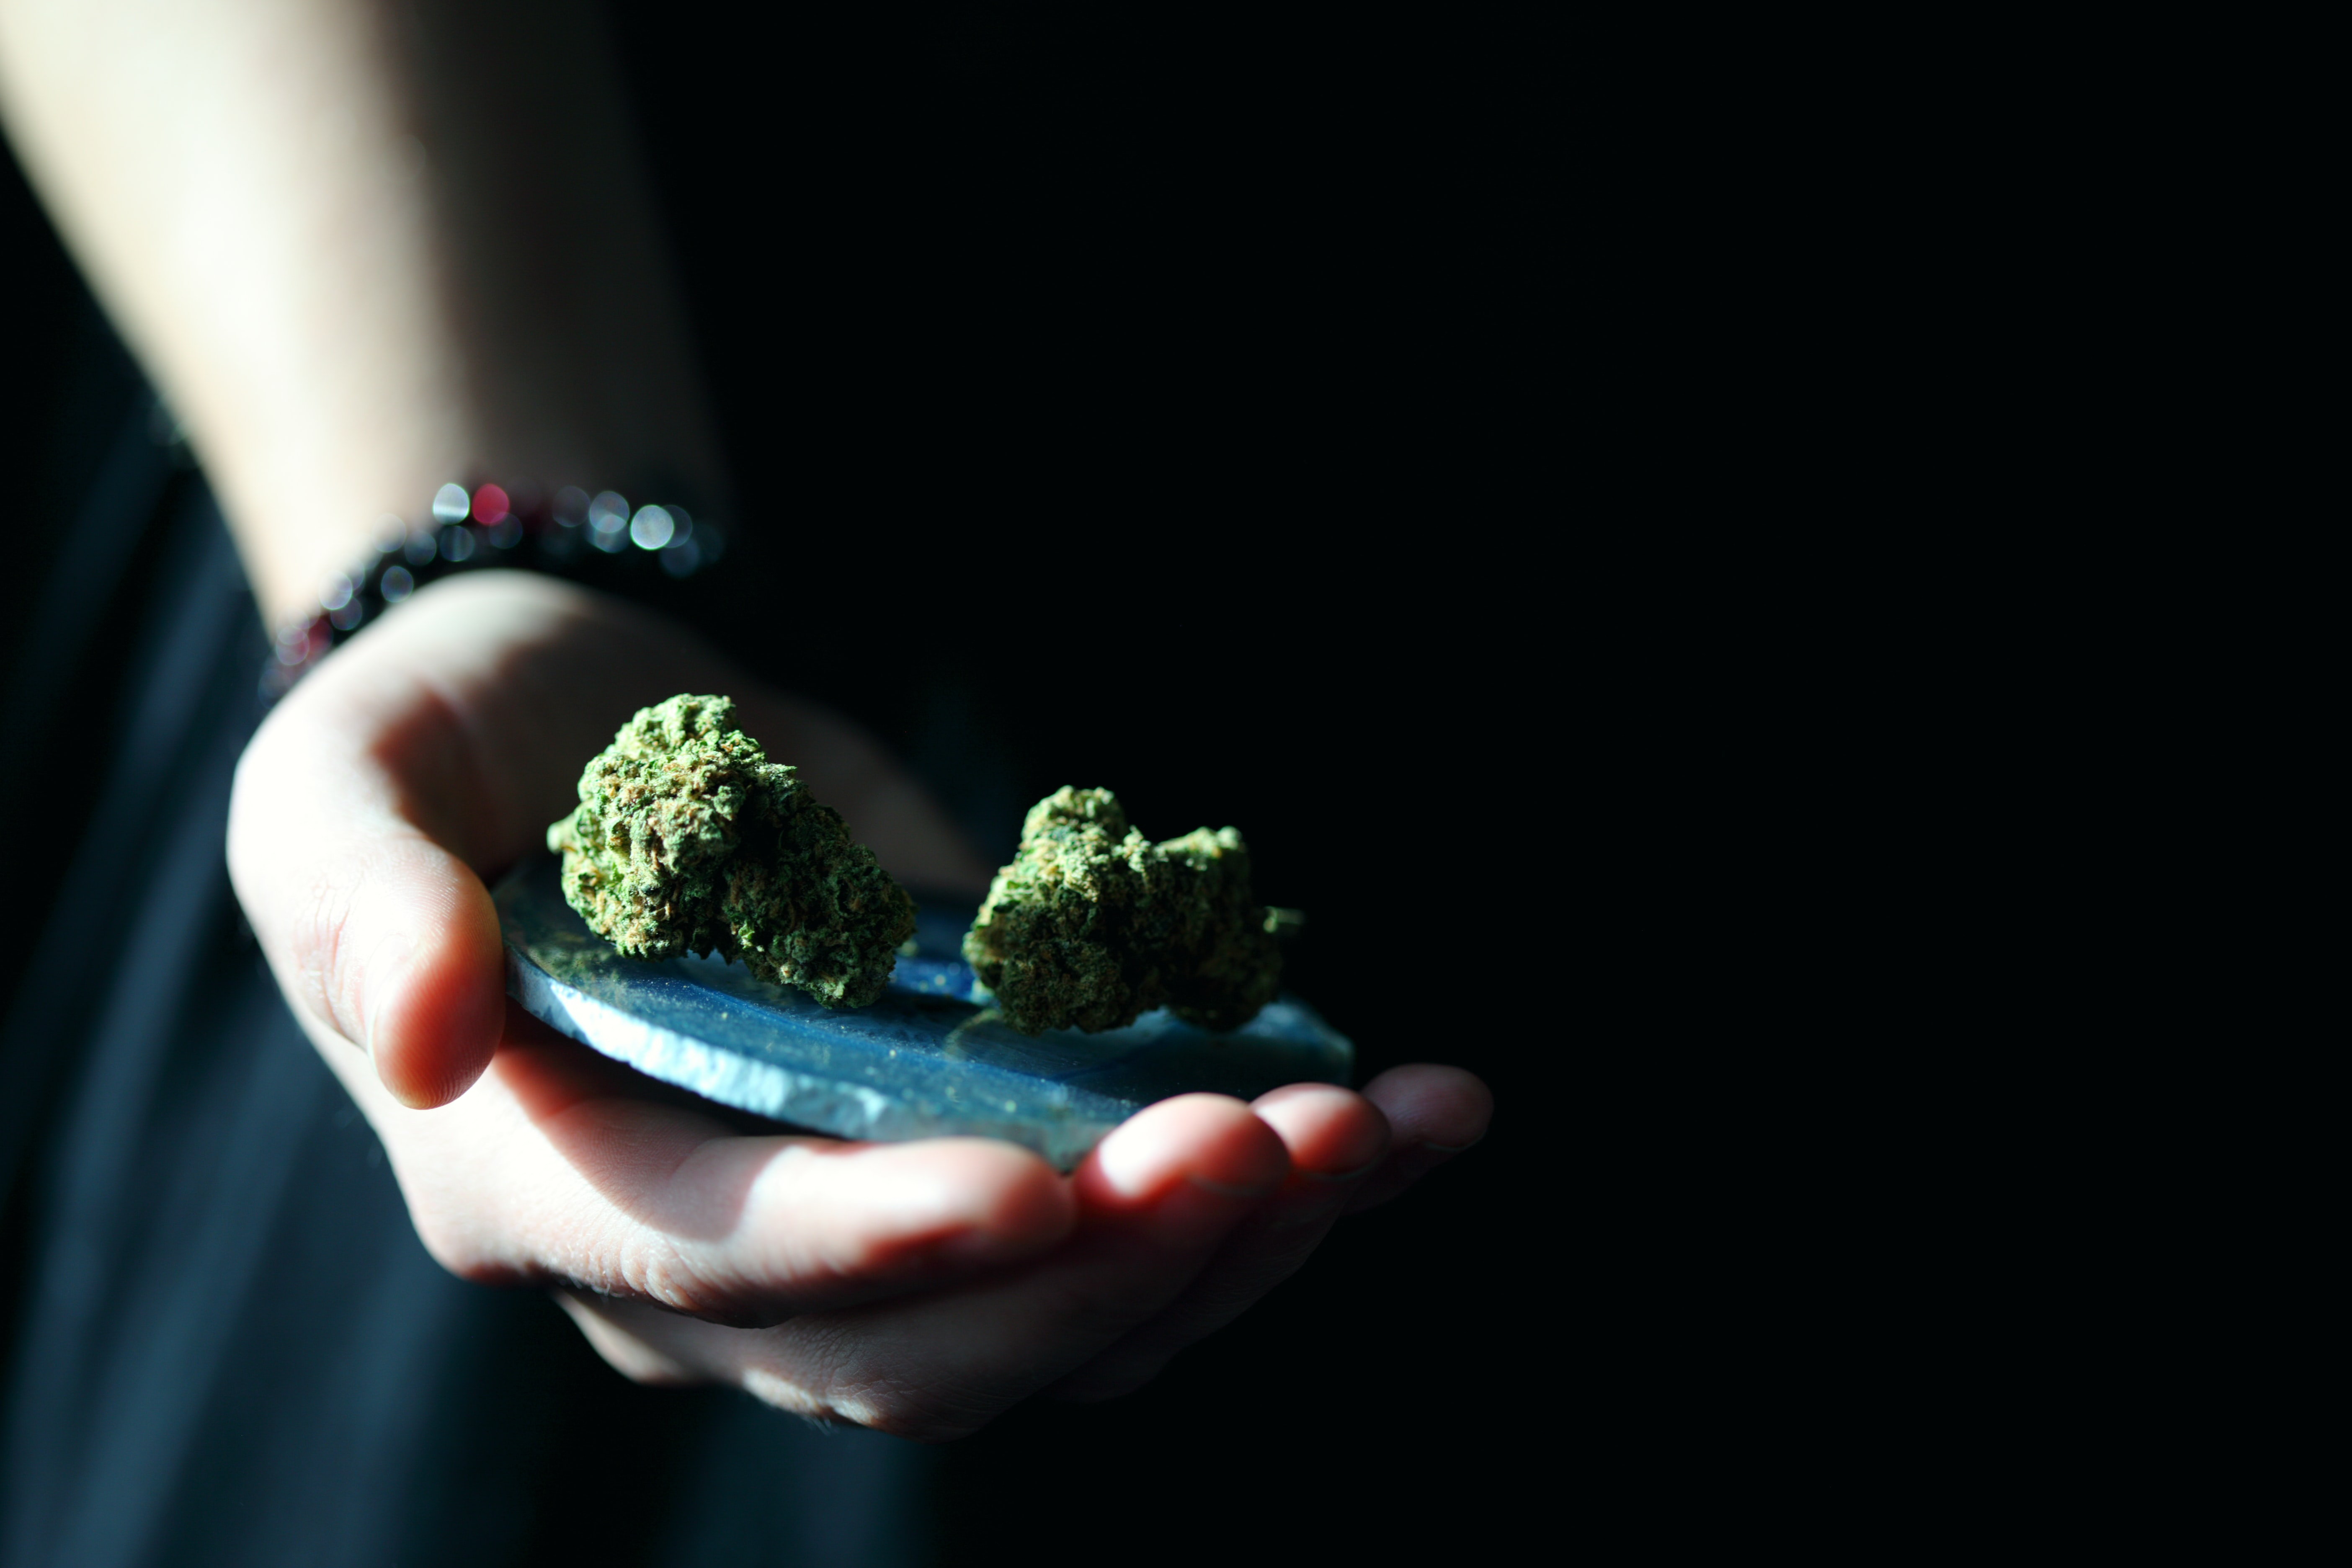 person holding green kush